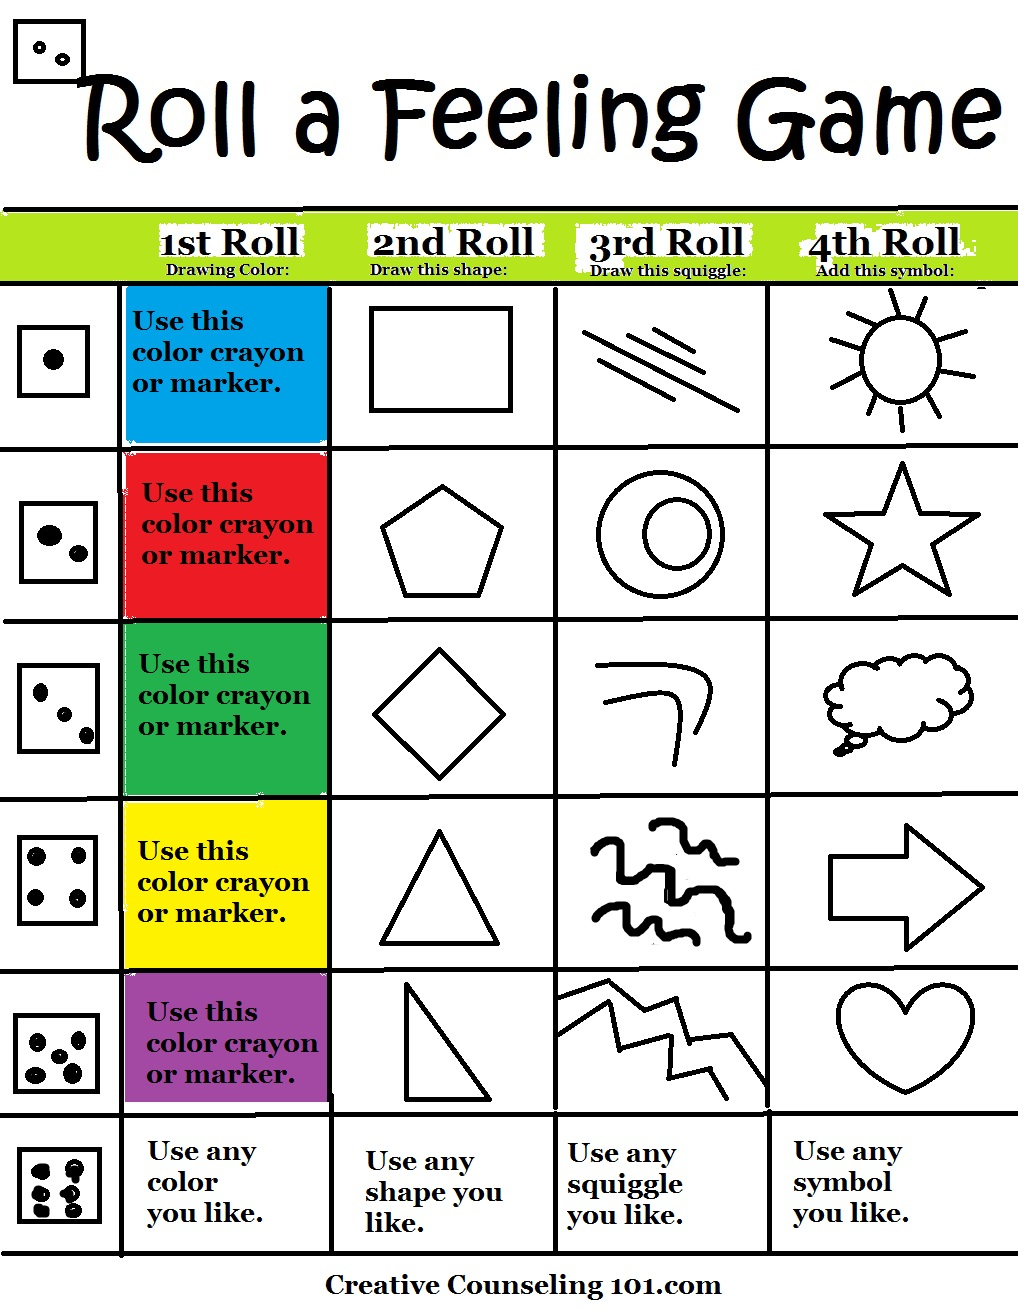 worksheet Art Therapy Worksheets art therapy roll a feelings game feeling board printable below